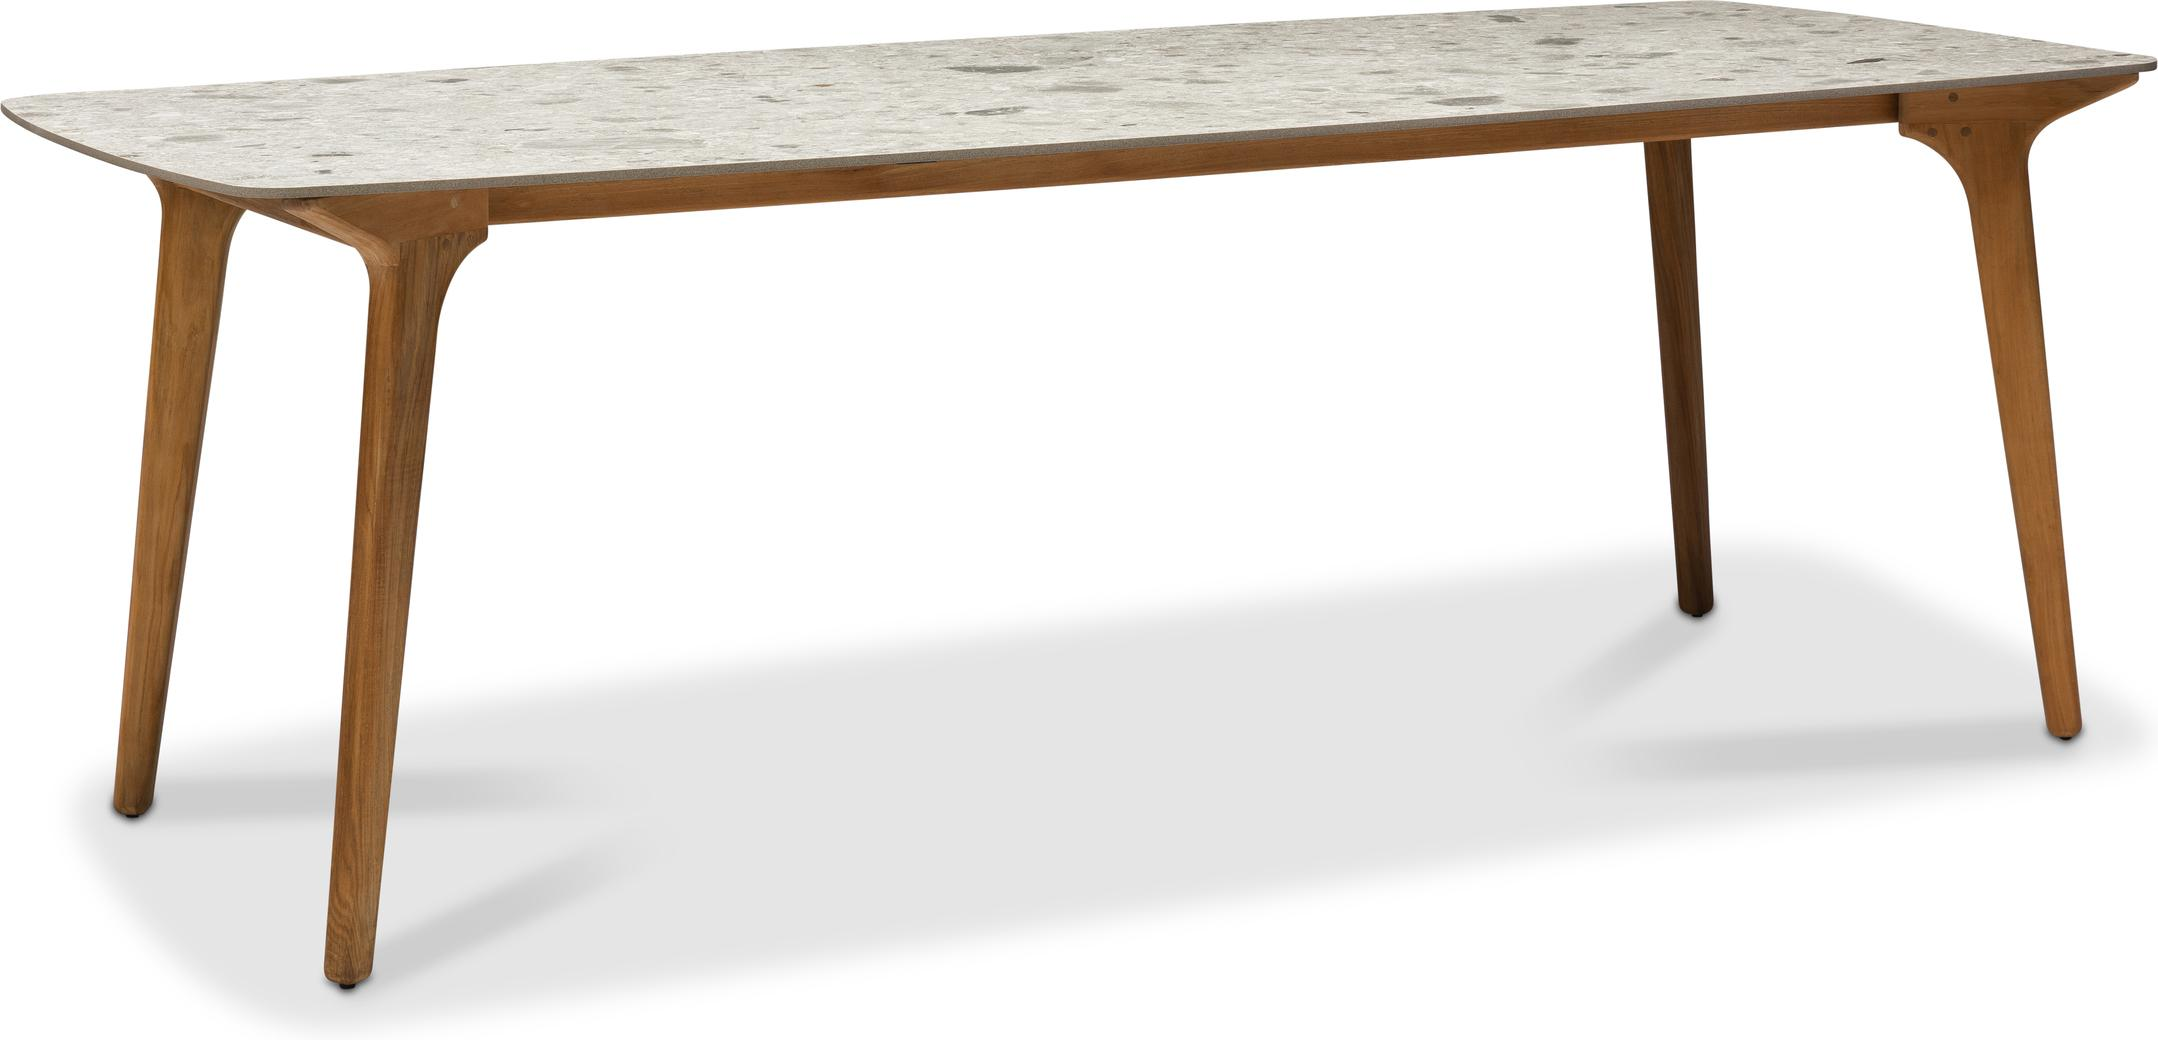 Torsa High dining table - Teak - CF 264